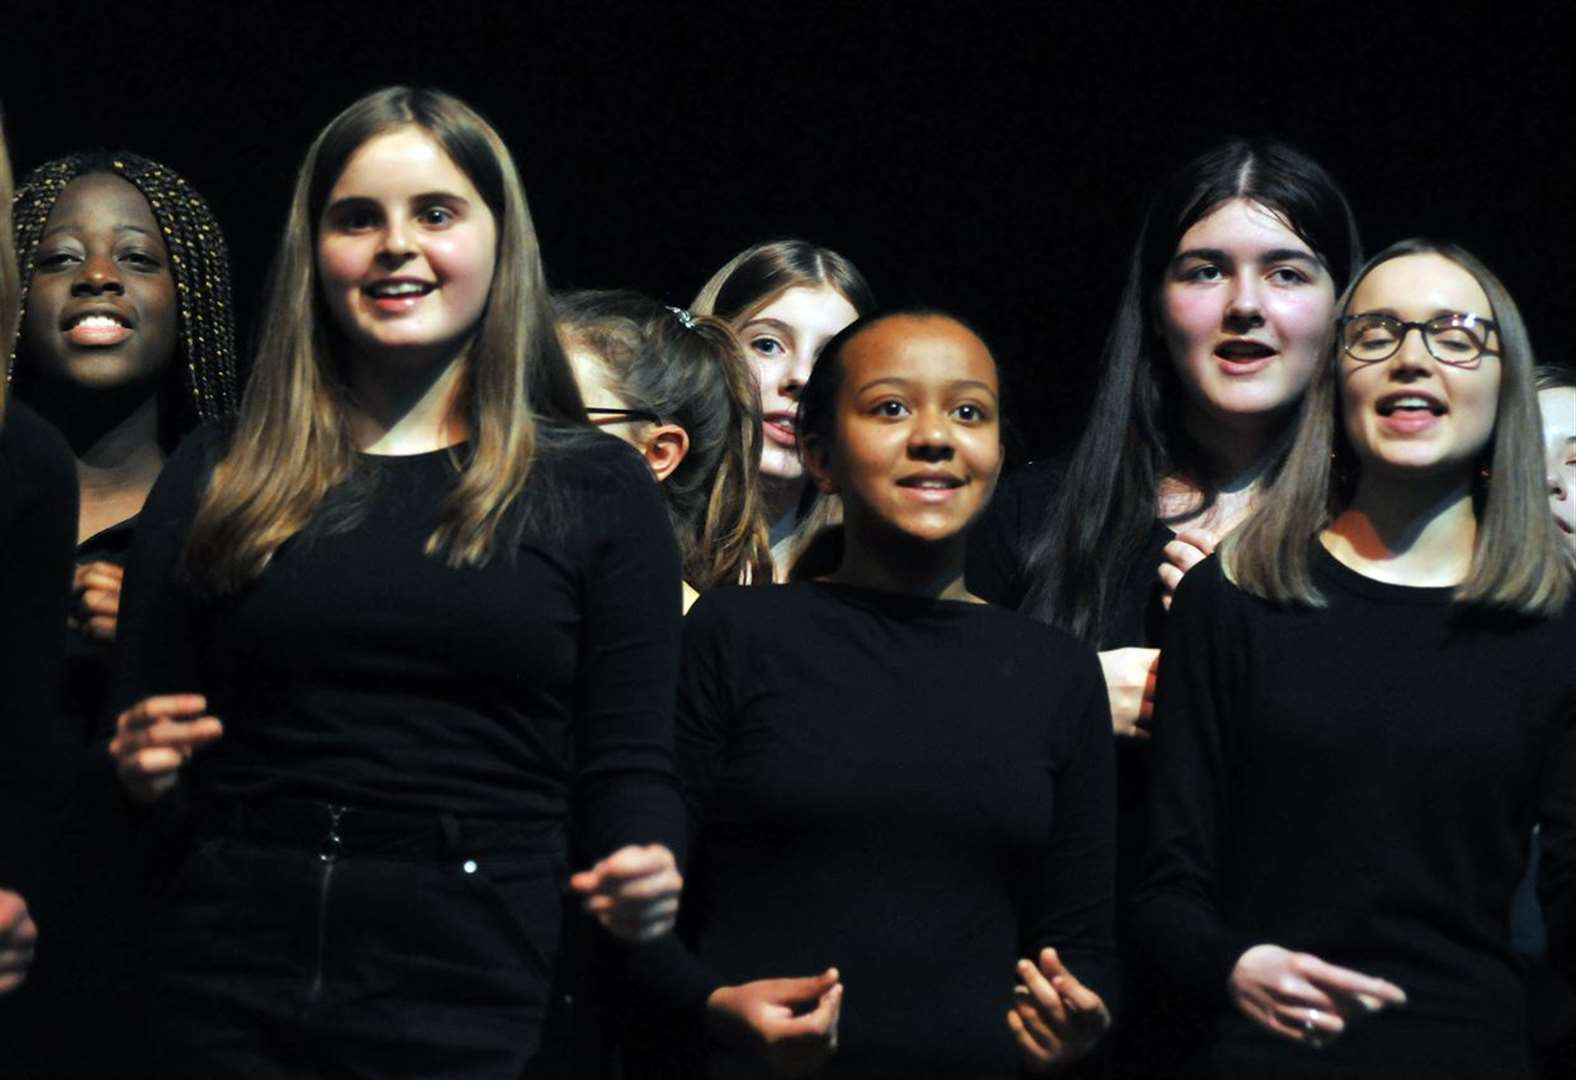 Snow falls on school choir at winter concert